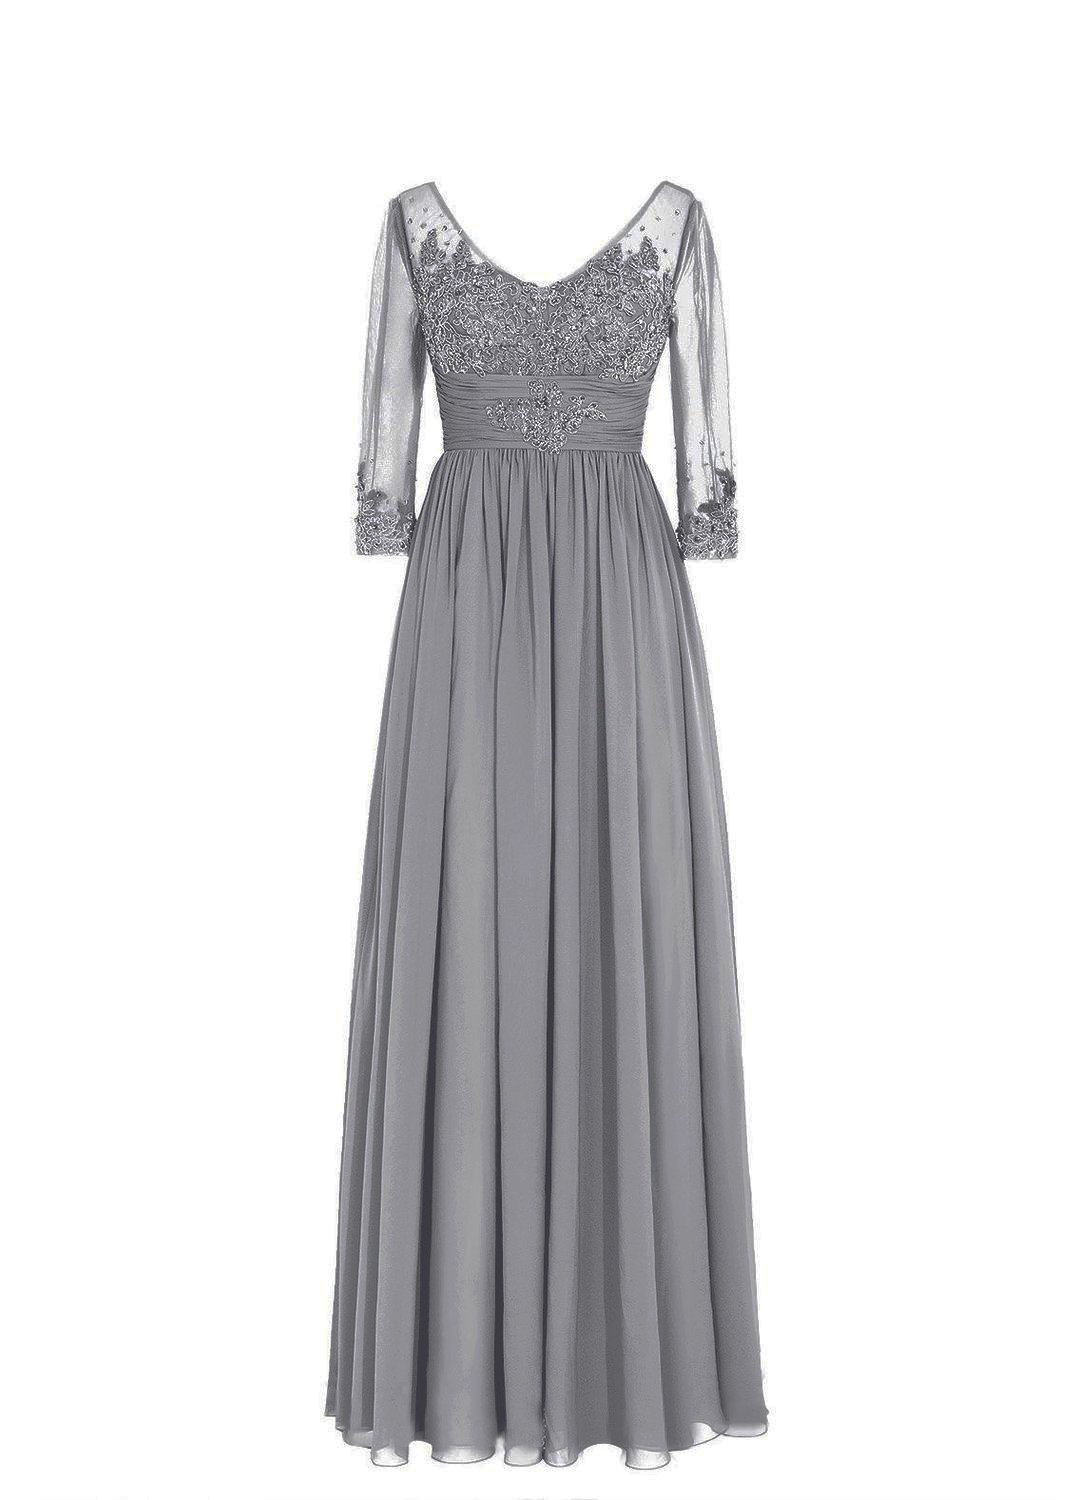 861ebbc545a SDRESS Women s Sequins Lace Appliques Half Sleeve V-Neck Mother of The  Bride Dress Grey Size 18